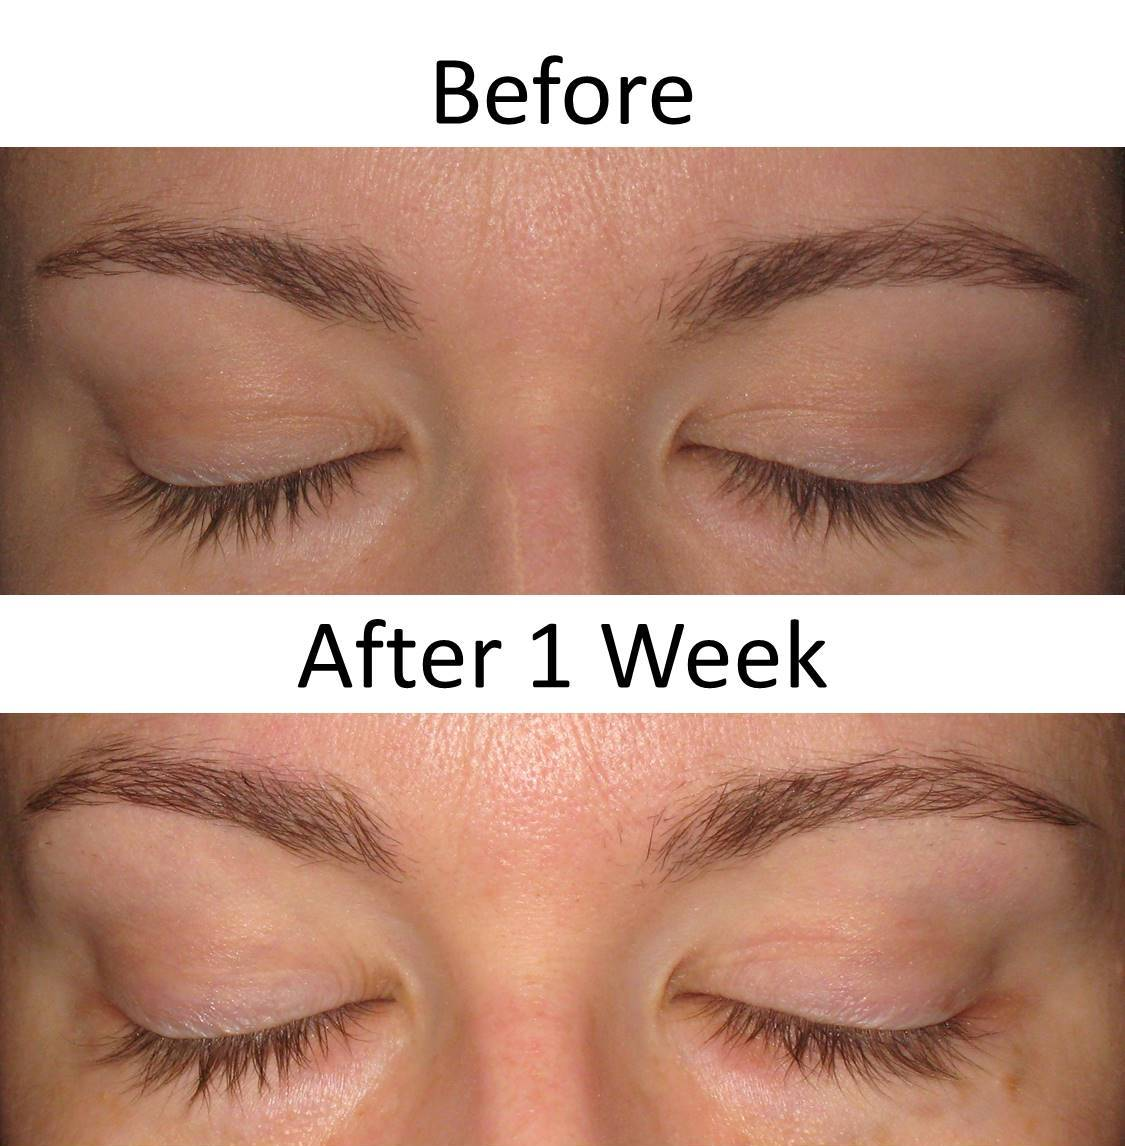 ee899a91c92 I've been using Unlimited Lashes for one week and as you can see not much  has happened. This product requires a few weeks to see results so I am  going ...